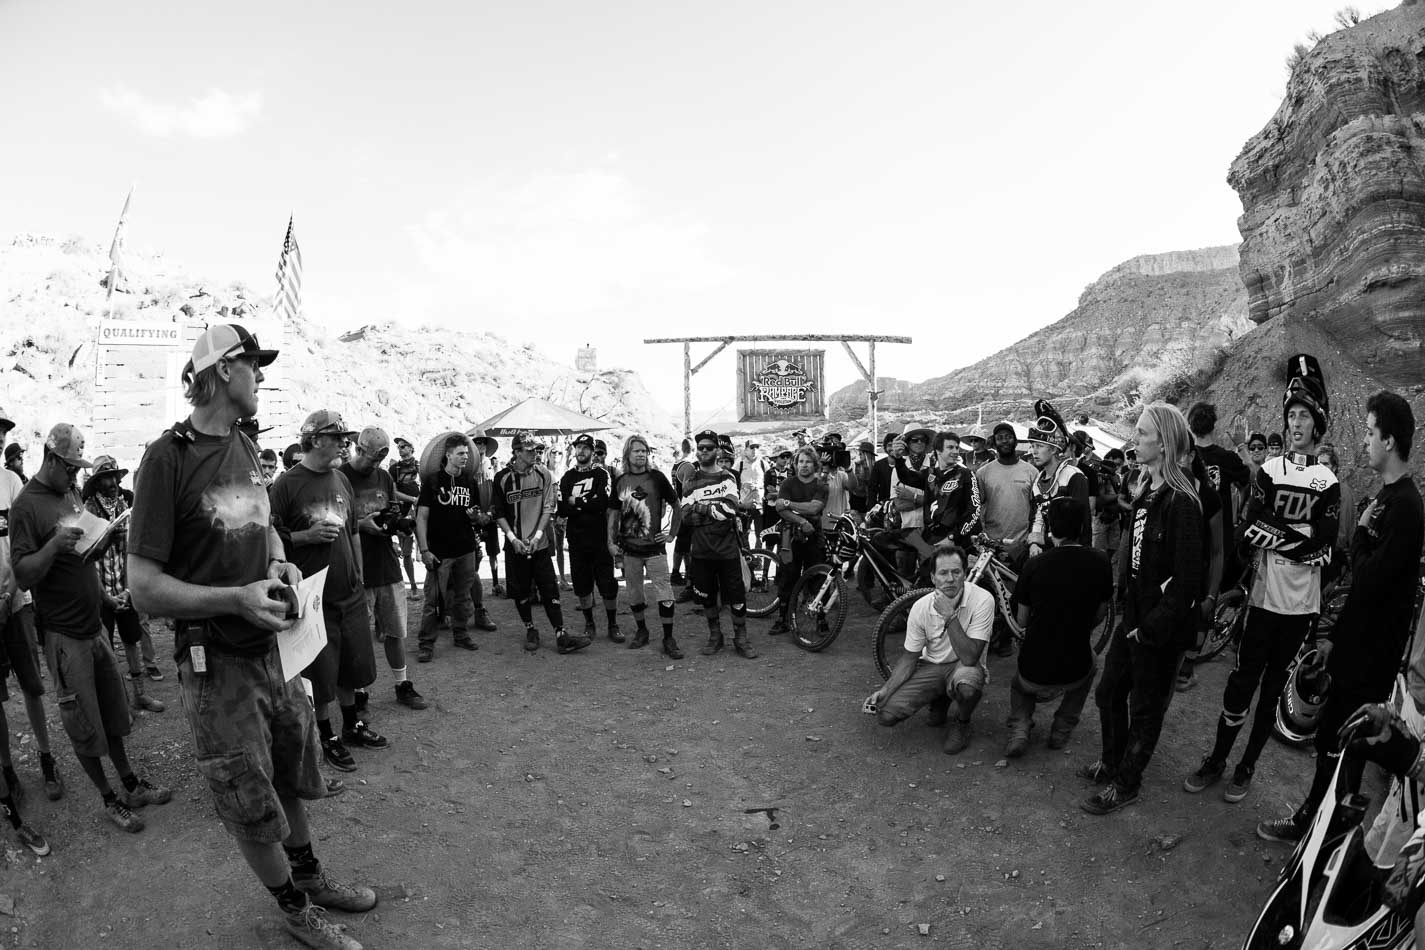 With an early-morning Utah wind kicking up well before this morning's riders' meeting, the couple-dozen qualifying hopefuls listened to the instructions with nervous anticipation.